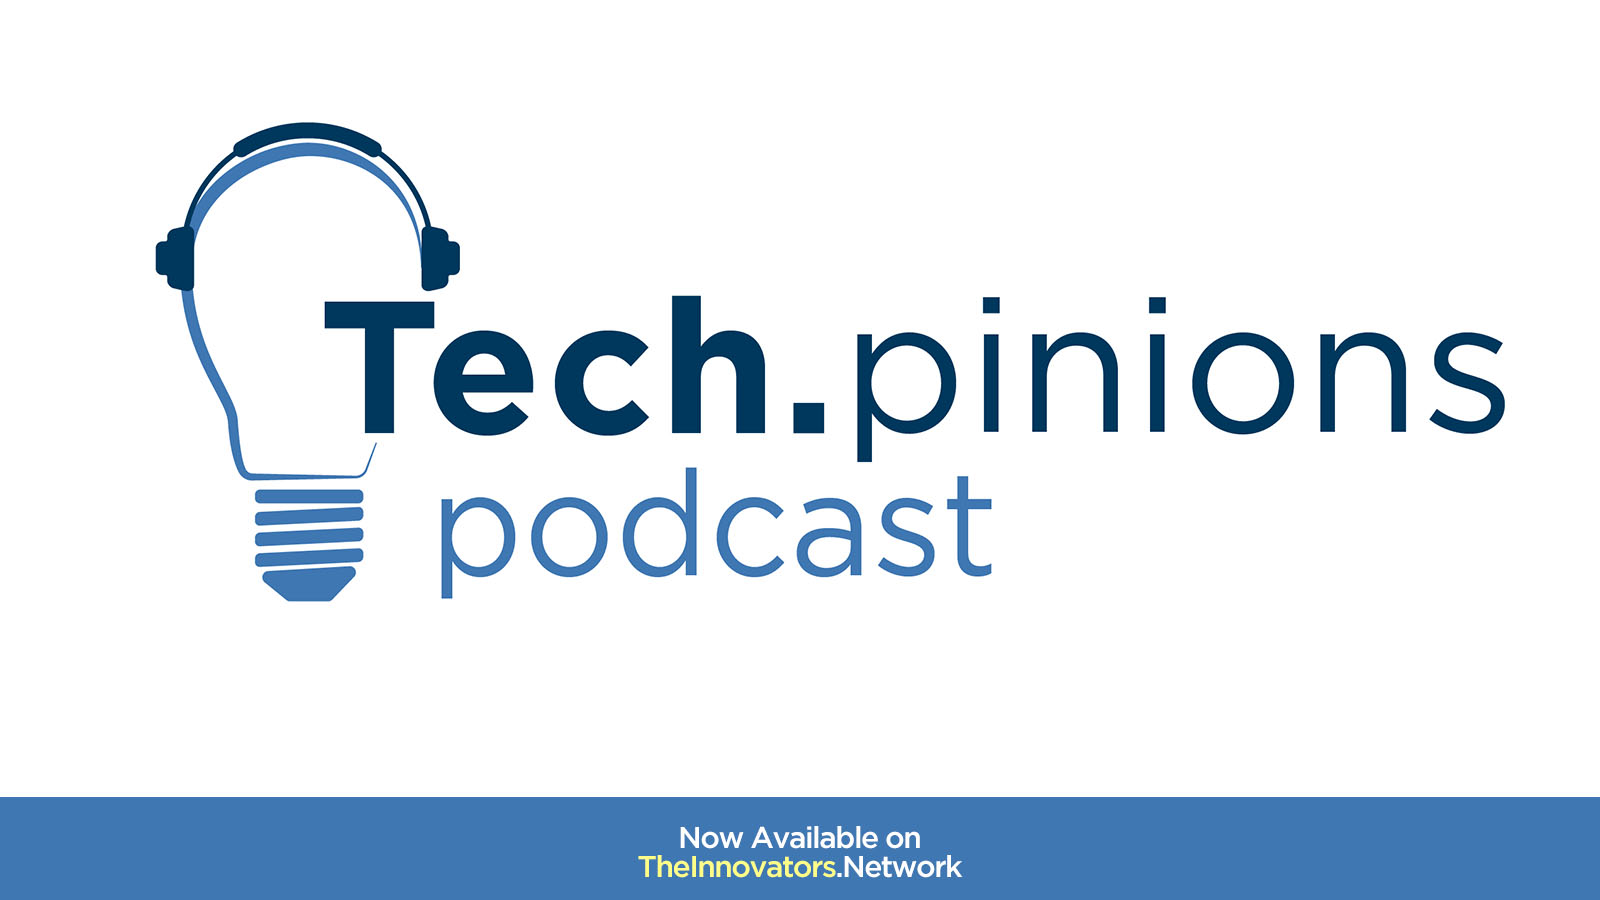 Techpinions podcast cover art - wide